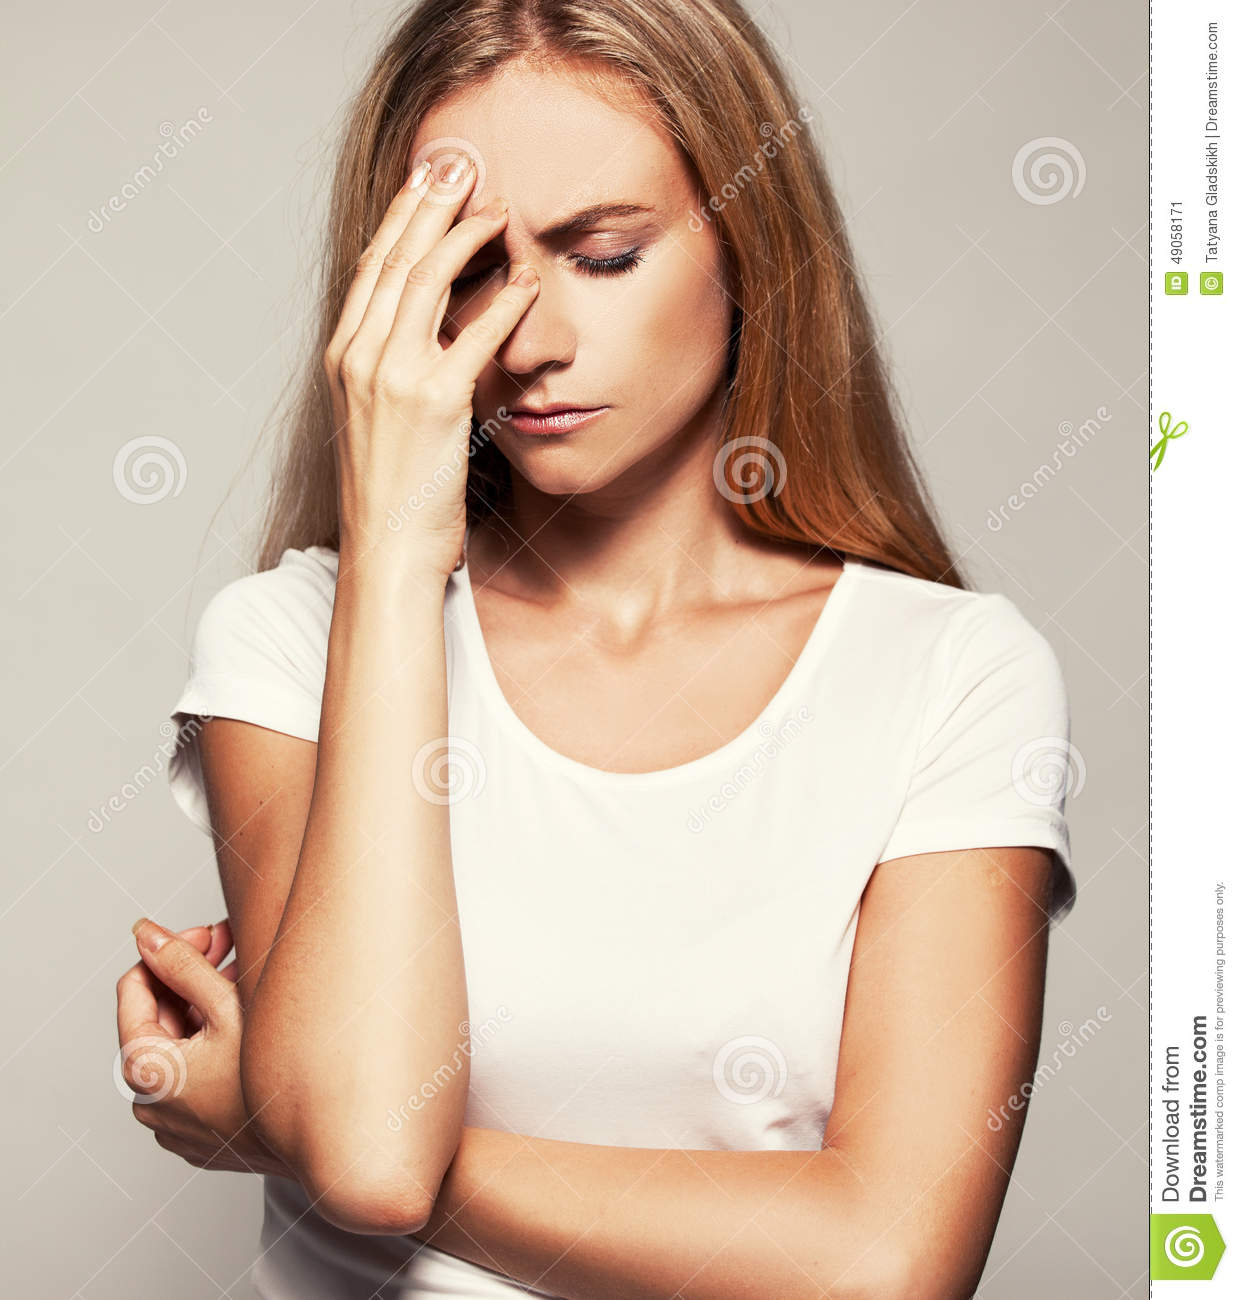 Upset Woman Stock Photo